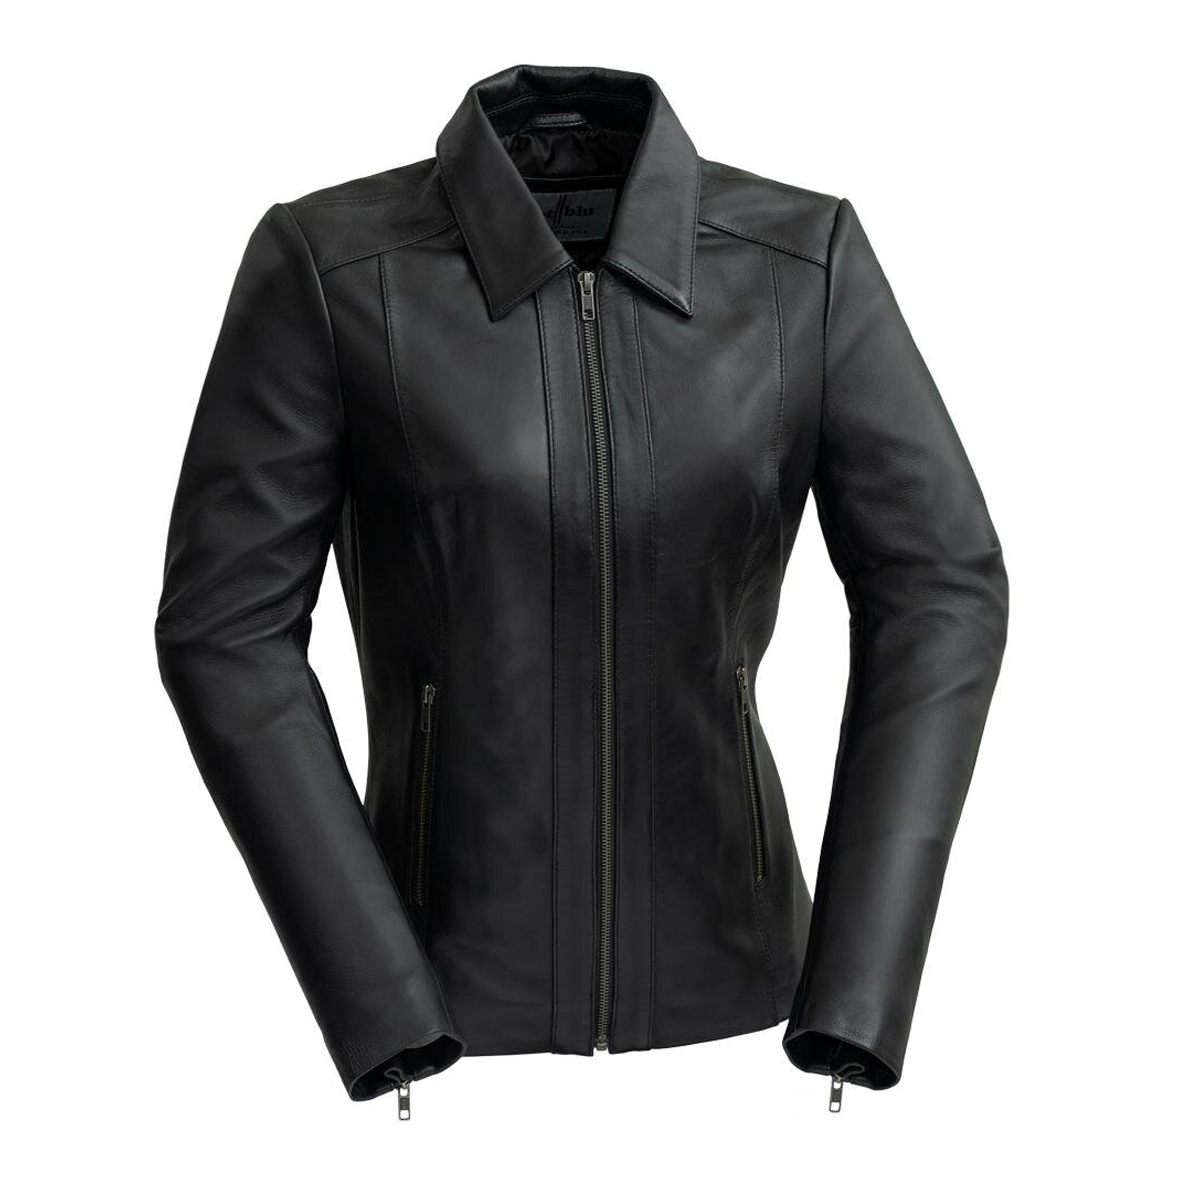 PATRICIA - WOMEN'S LEATHER JACKET